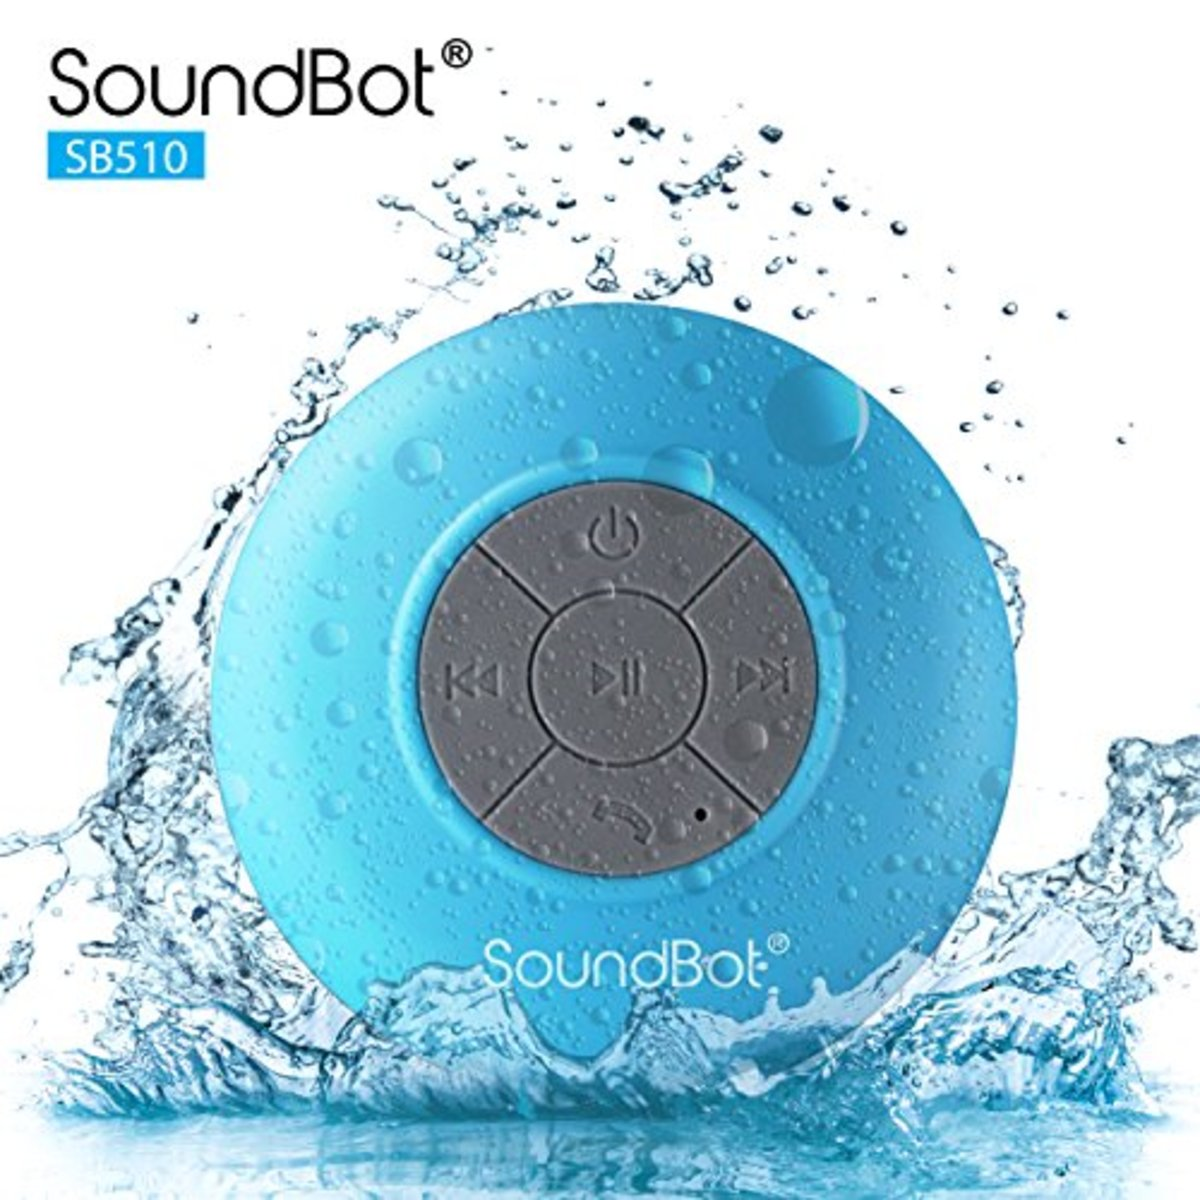 Troubleshooting SoundBot SB510 HD Water Resistant Bluetooth Speaker